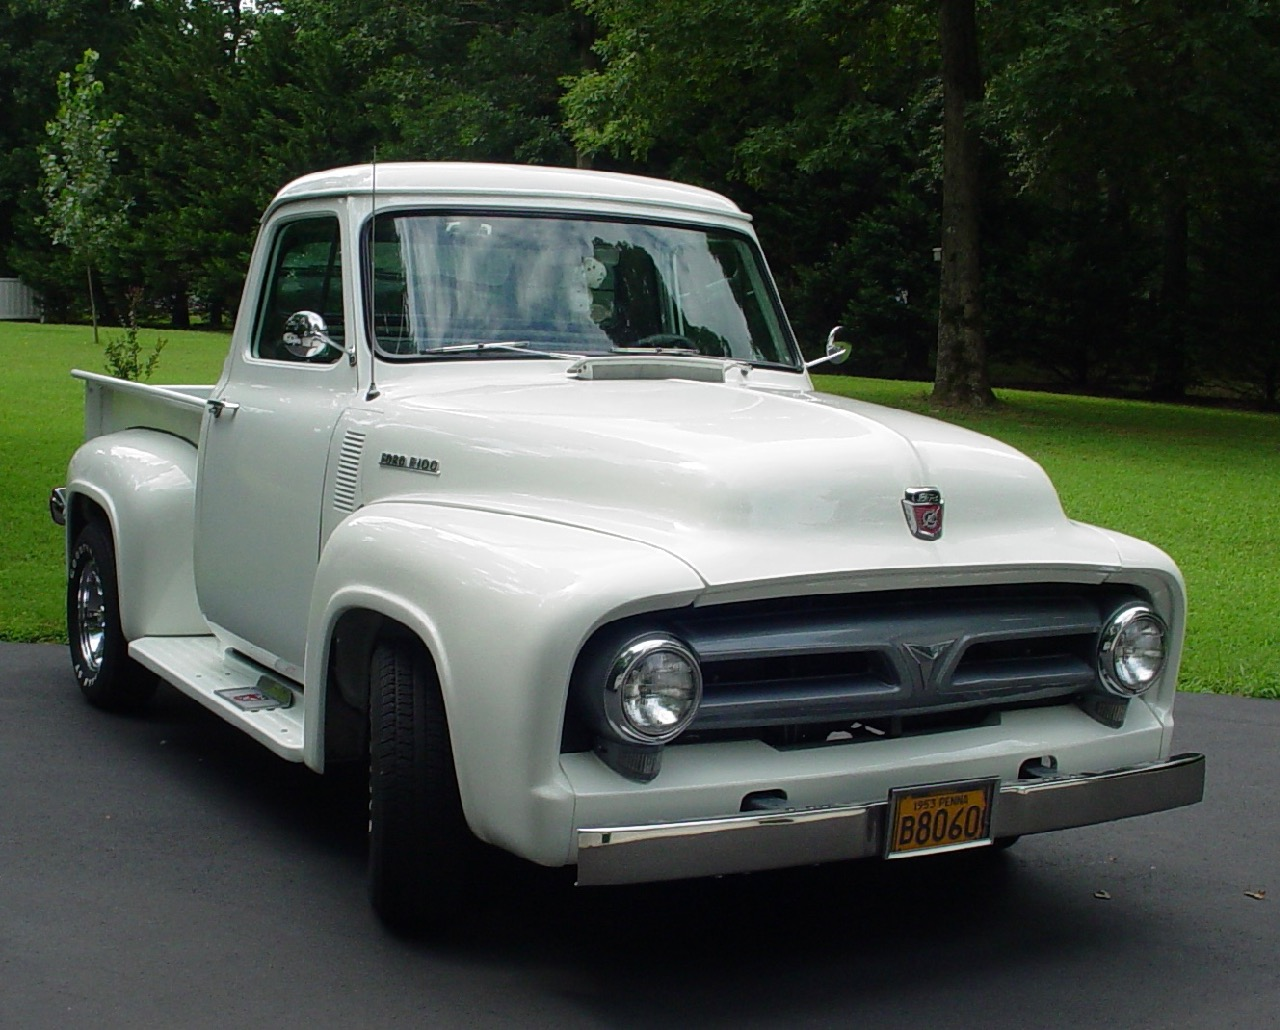 This 1952 Ford F100 was a father and sons project | Bob Sorensen photos